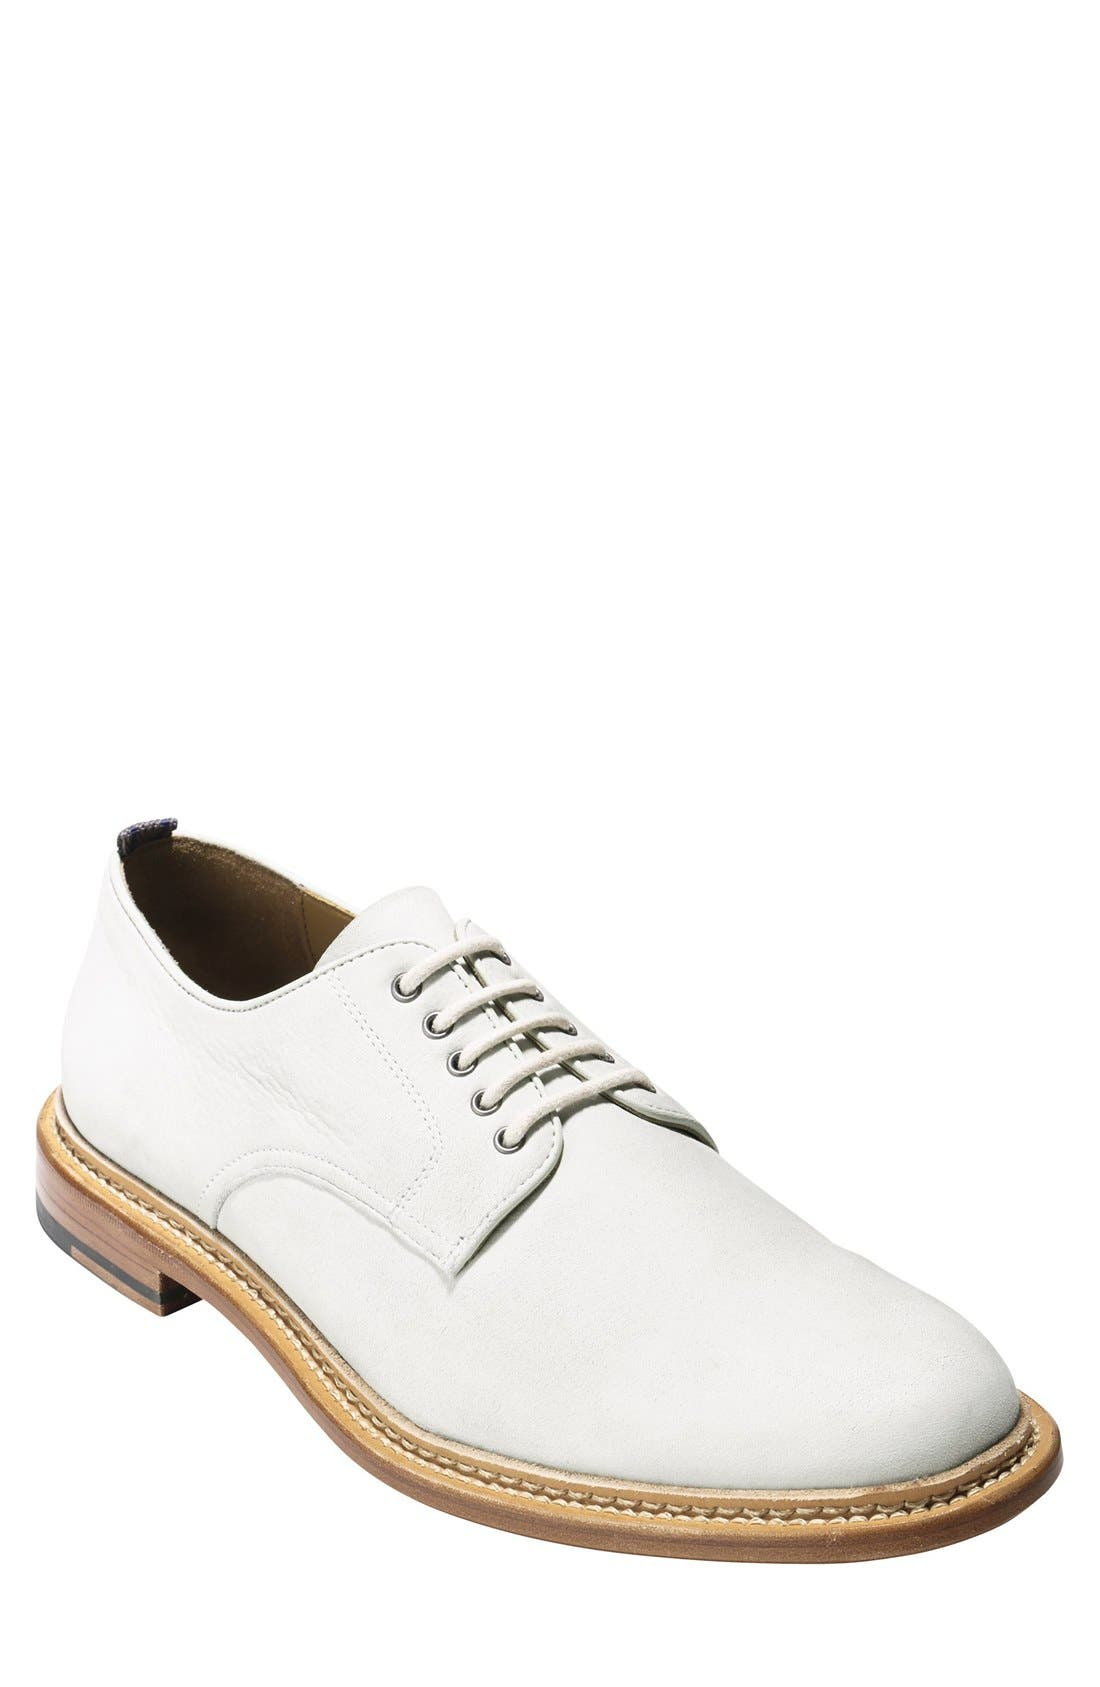 'Willet' Nubuck Plain Toe Derby,                         Main,                         color, Ivory